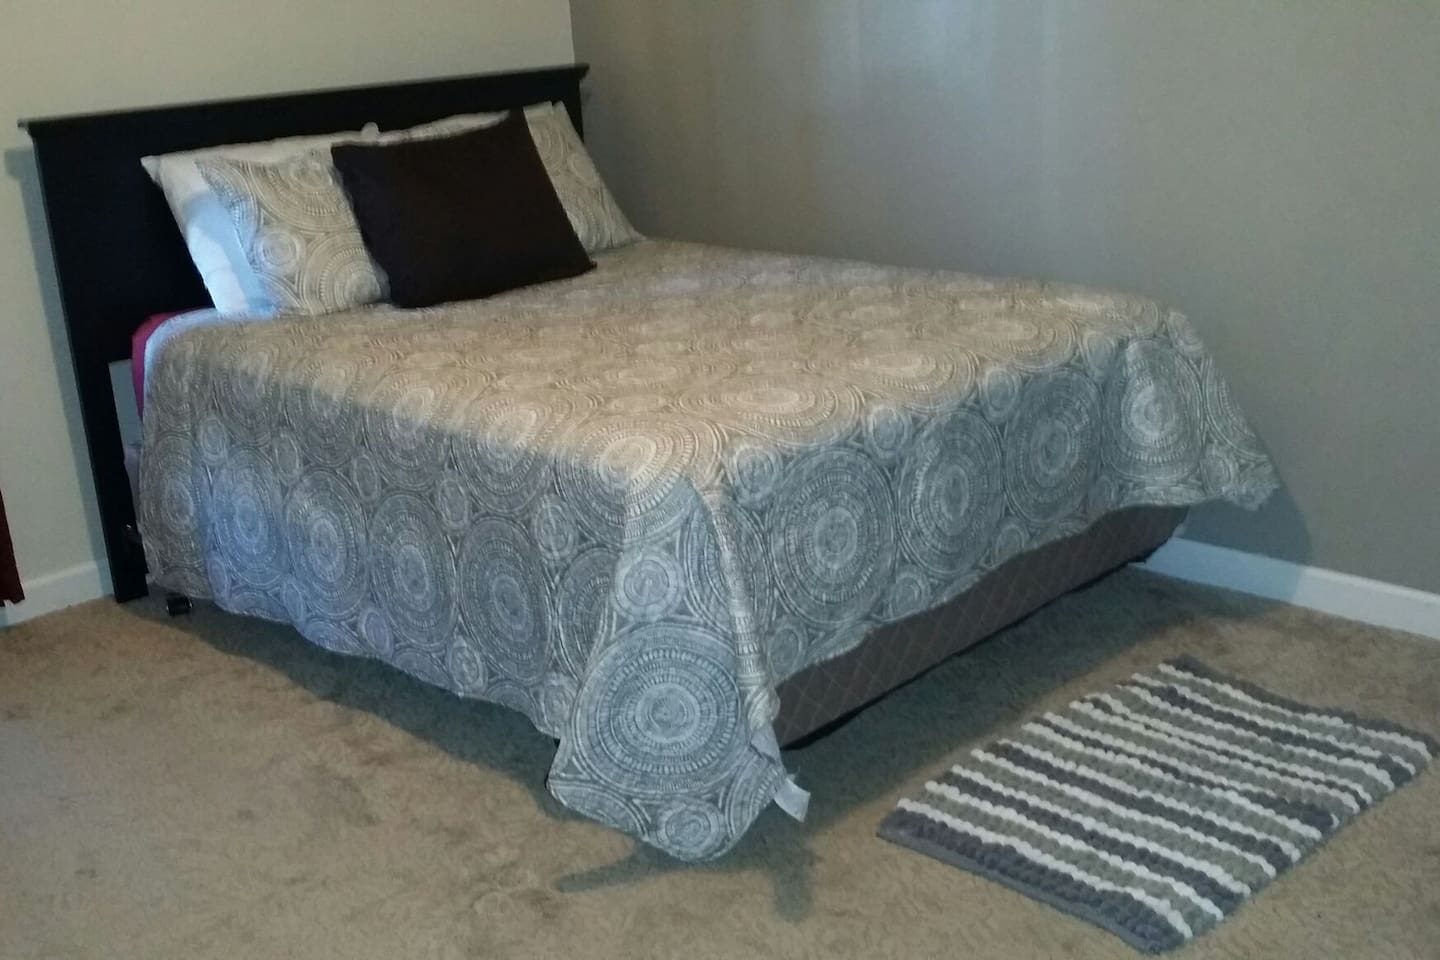 Queen size bed, light quilted cover great for Summer bundling, three neck relaxing pillows for an enjoyable slumber.